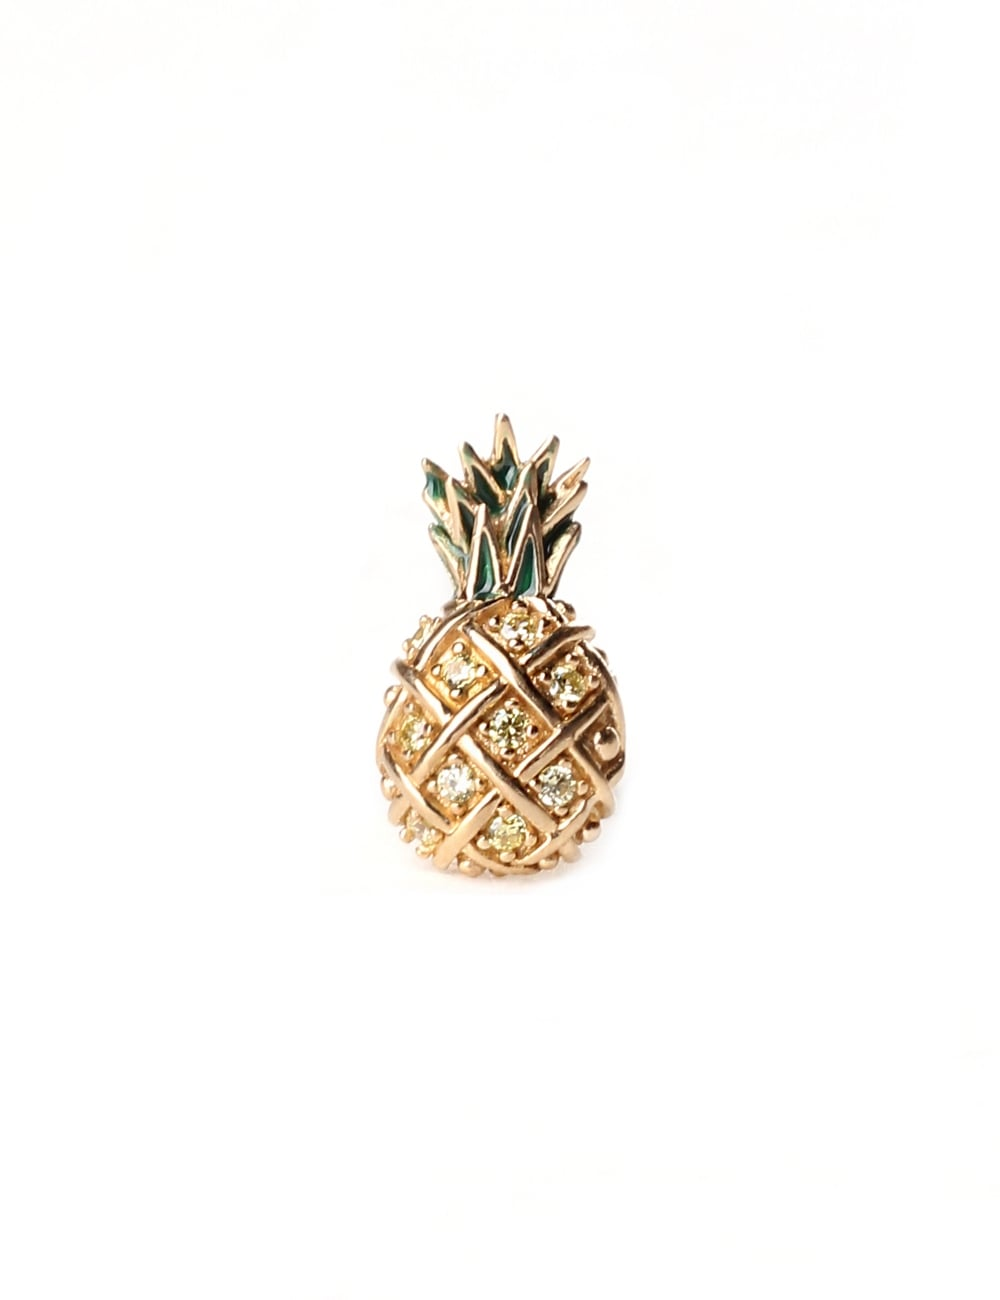 yiustar earrings jewelry pineapple brushed dainty brox stud gift products post minimalist london